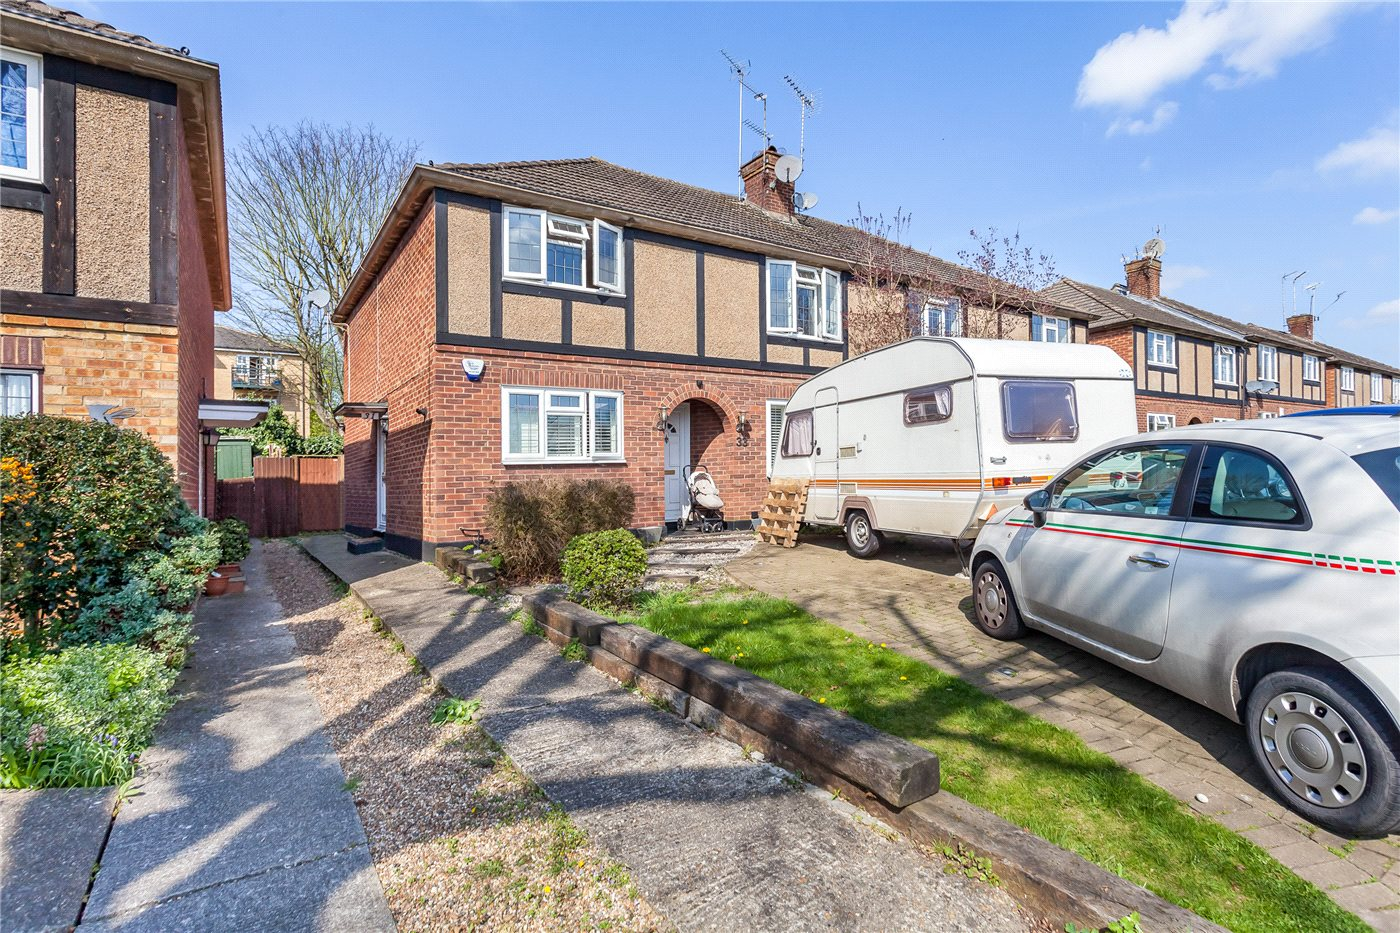 2 Bedrooms Maisonette Flat for sale in Monks Close, Enfield, EN2